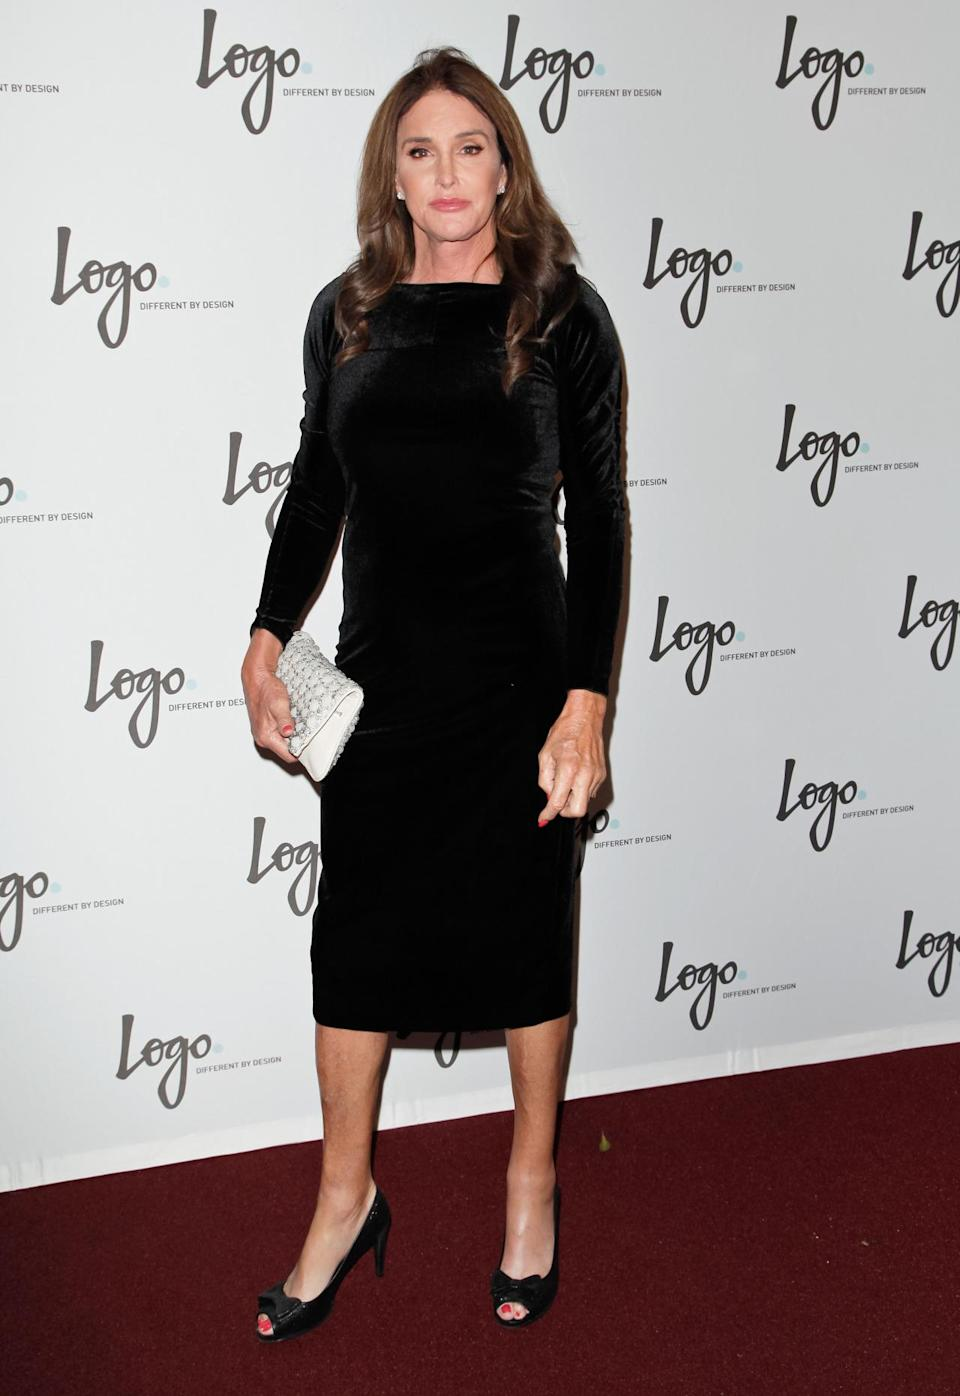 <p>For her birthday on October 28, Caitlyn Jenner celebrated the night before by walking a red carpet in a black velvet dress. She paired the long-sleeved piece with open-toe heels, showing off her bright pink pedicure, a white clutch, and diamond earrings. Chandi Moore, Candis Cayne, and Geena Rocero were all in attendance as well. </p>